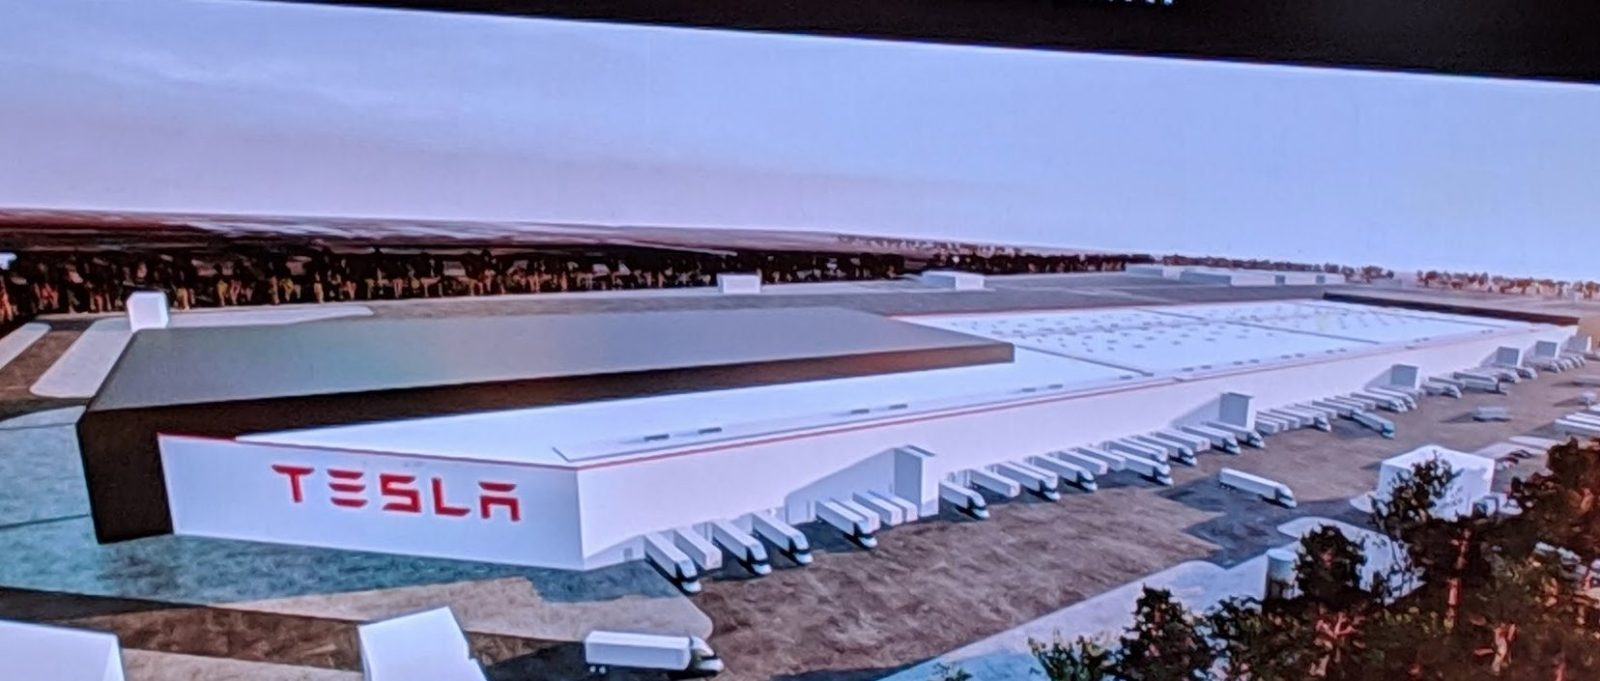 Elon Musk tries to ease Tesla Gigafactory Berlin concerns after protests